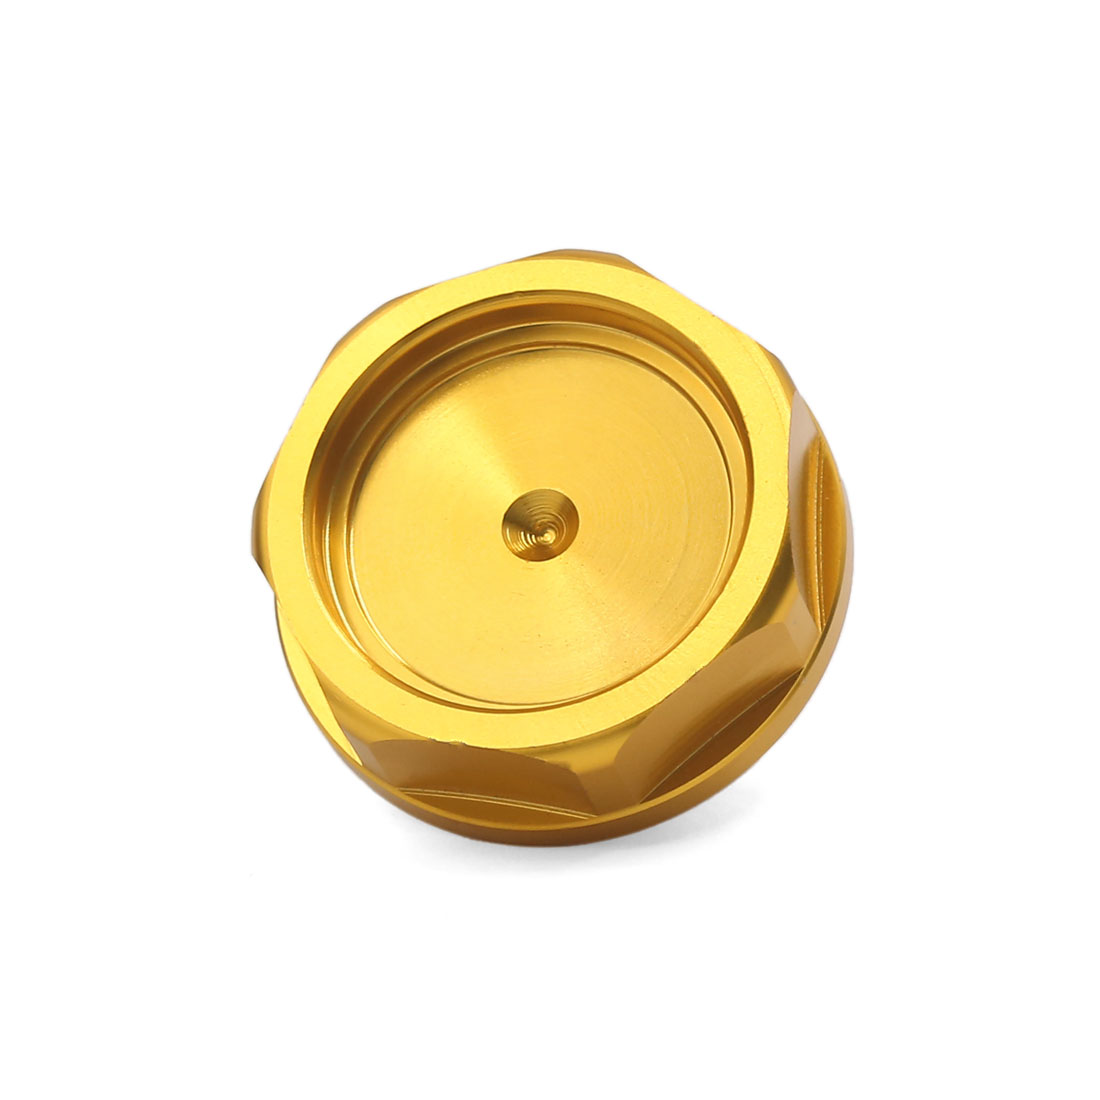 32mm Thread Dia Aluminum Alloy Car Engine Gas Tank Cap Fuel Cover Gold Tone